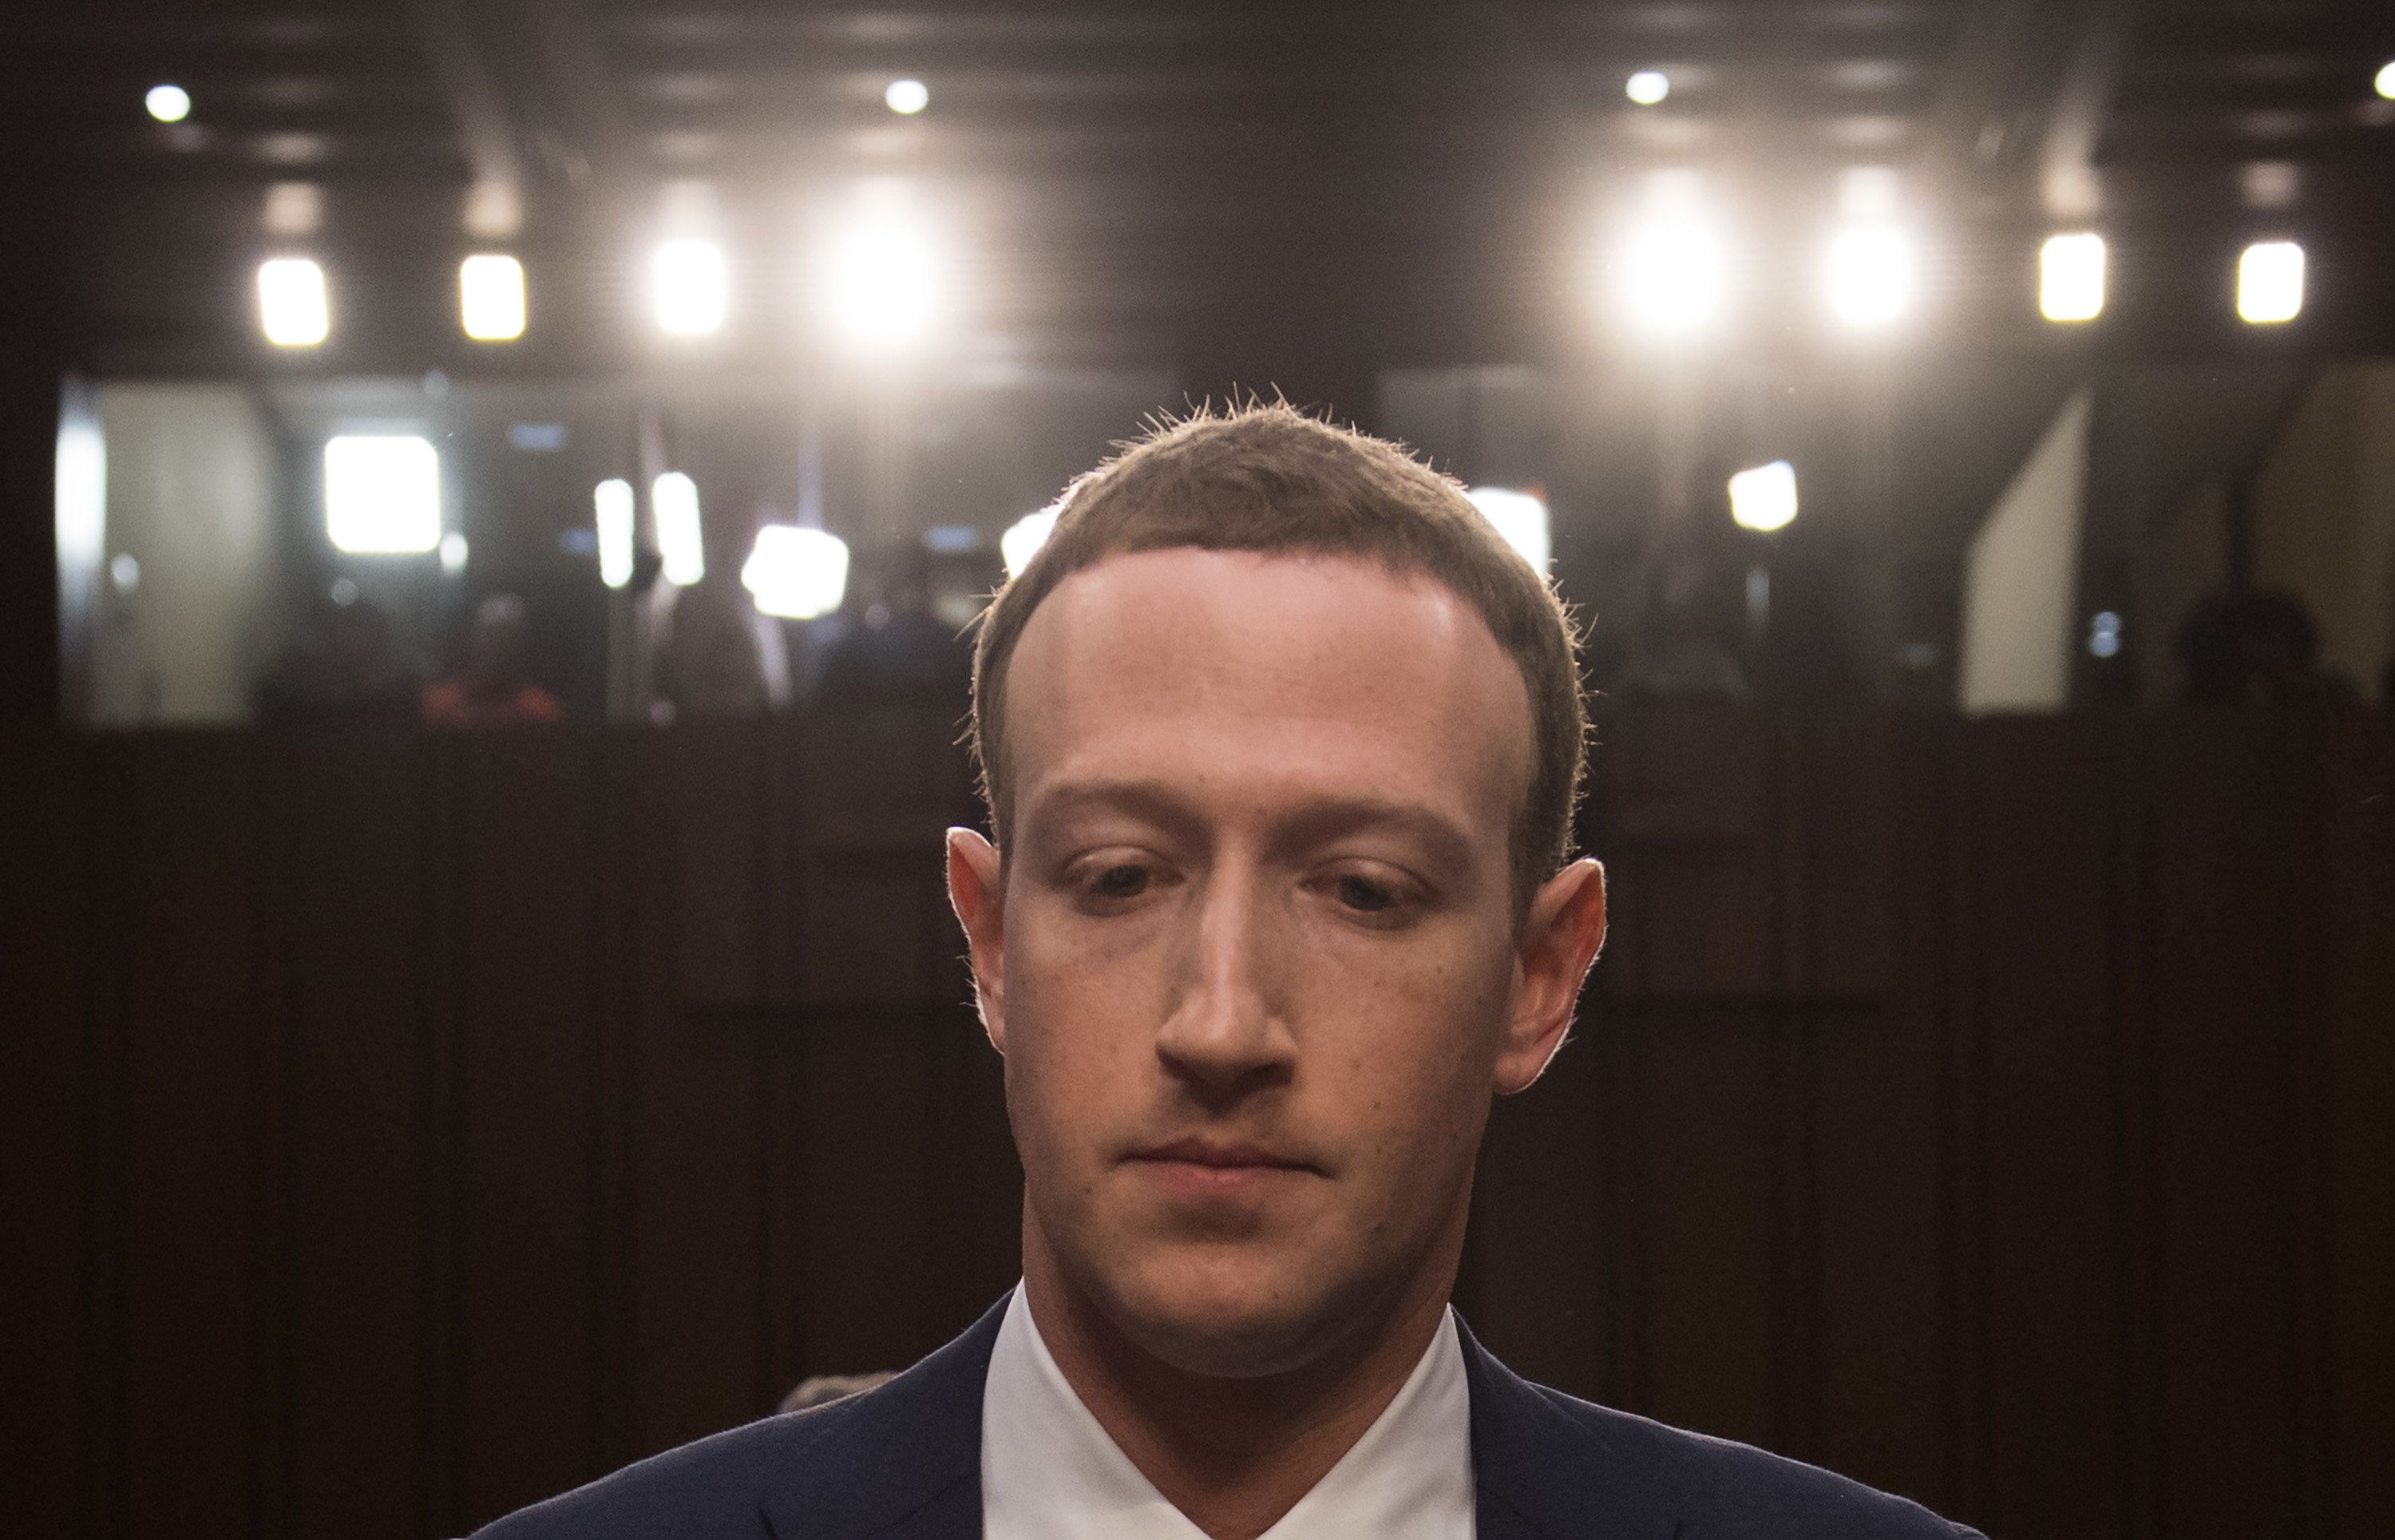 Facebook founder and CEO Mark Zuckerberg arrives to testify following a break during a Senate Commerce, Science and Transportation Committee and Senate Judiciary Committee joint hearing about Facebook on Capitol Hill in Washington, DC, April 10, 2018. / AFP PHOTO / SAUL LOEB        (Photo credit should read SAUL LOEB/AFP/Getty Images)